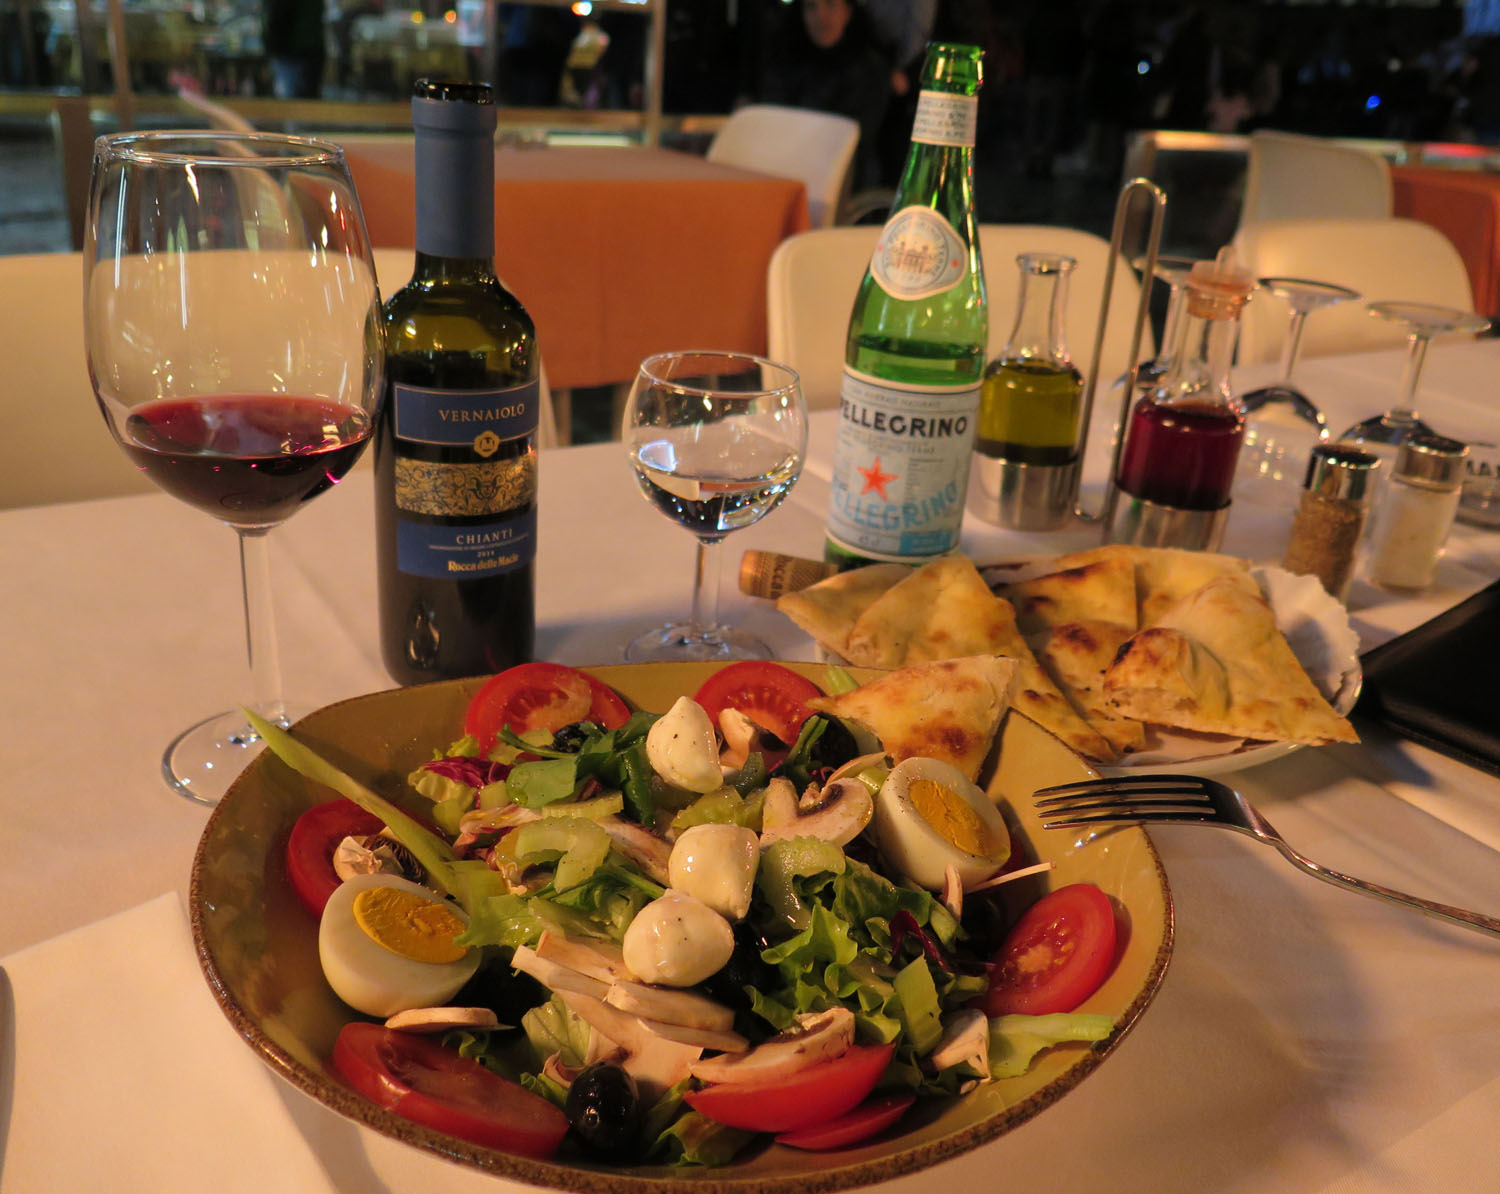 Italy-Florence-Food-And-Drink-Salad-Vino